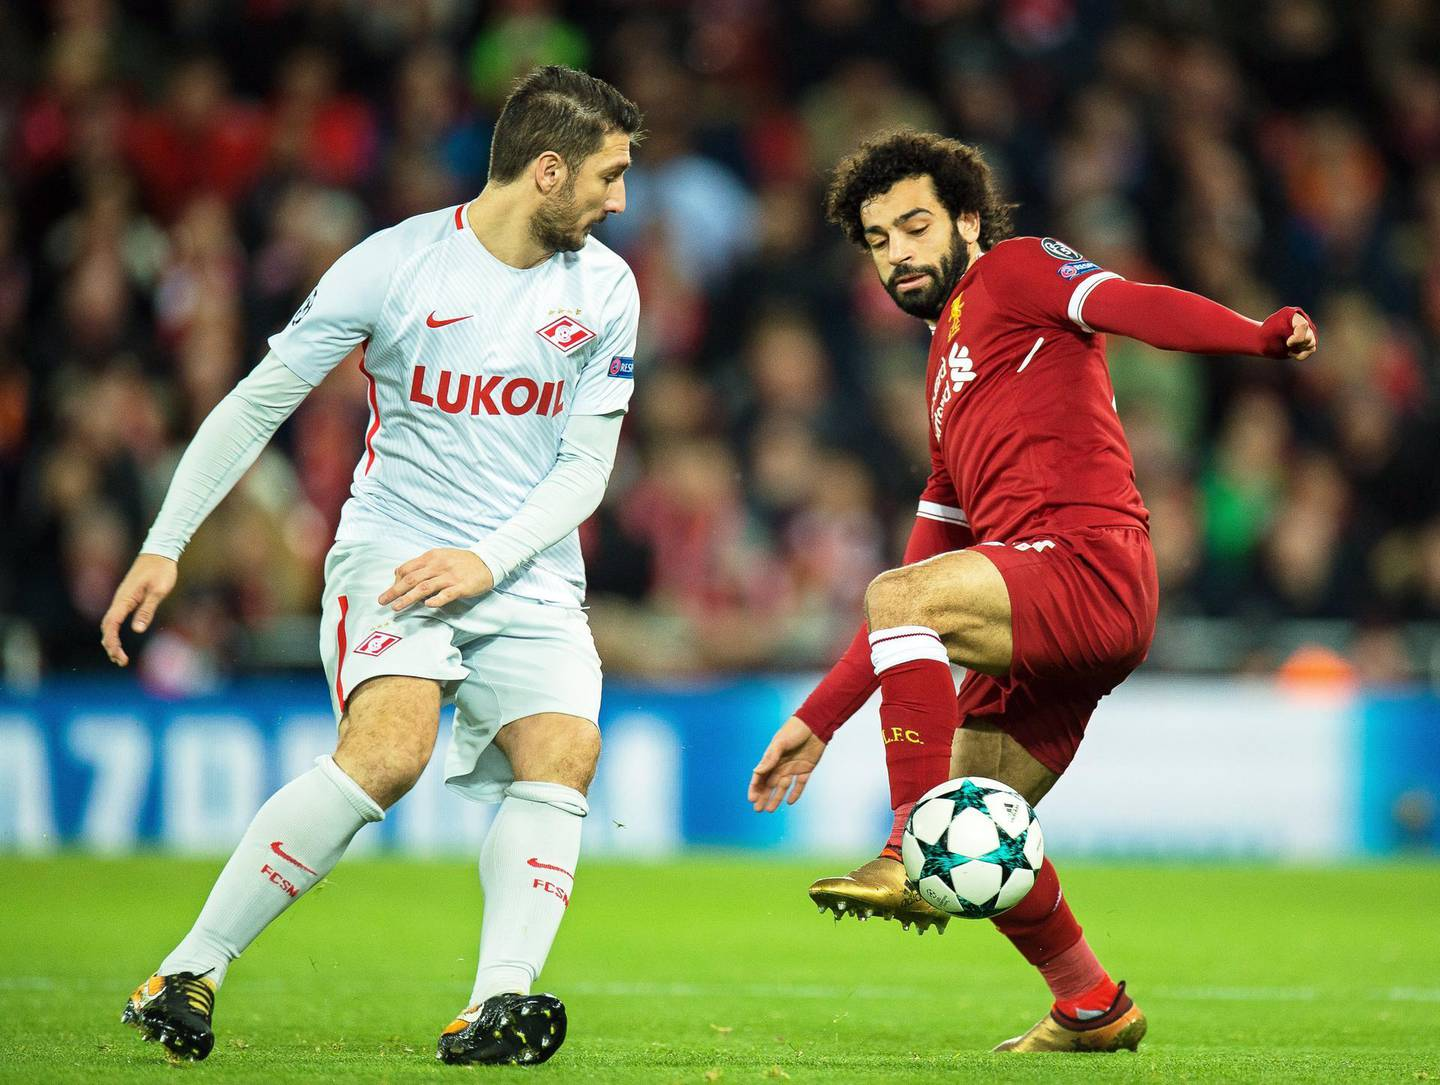 epaselect epa06372190 Spartak Moscow's Salvatore Bocchetti (L) in action against Liverpool's Mohamed Salah (R) during the UEFA Champions League group E soccer match between Liverpool FC and Spartak Moscow at Anfield in Liverpool, Britain, 06 December 2017.  EPA/PETER POWELL